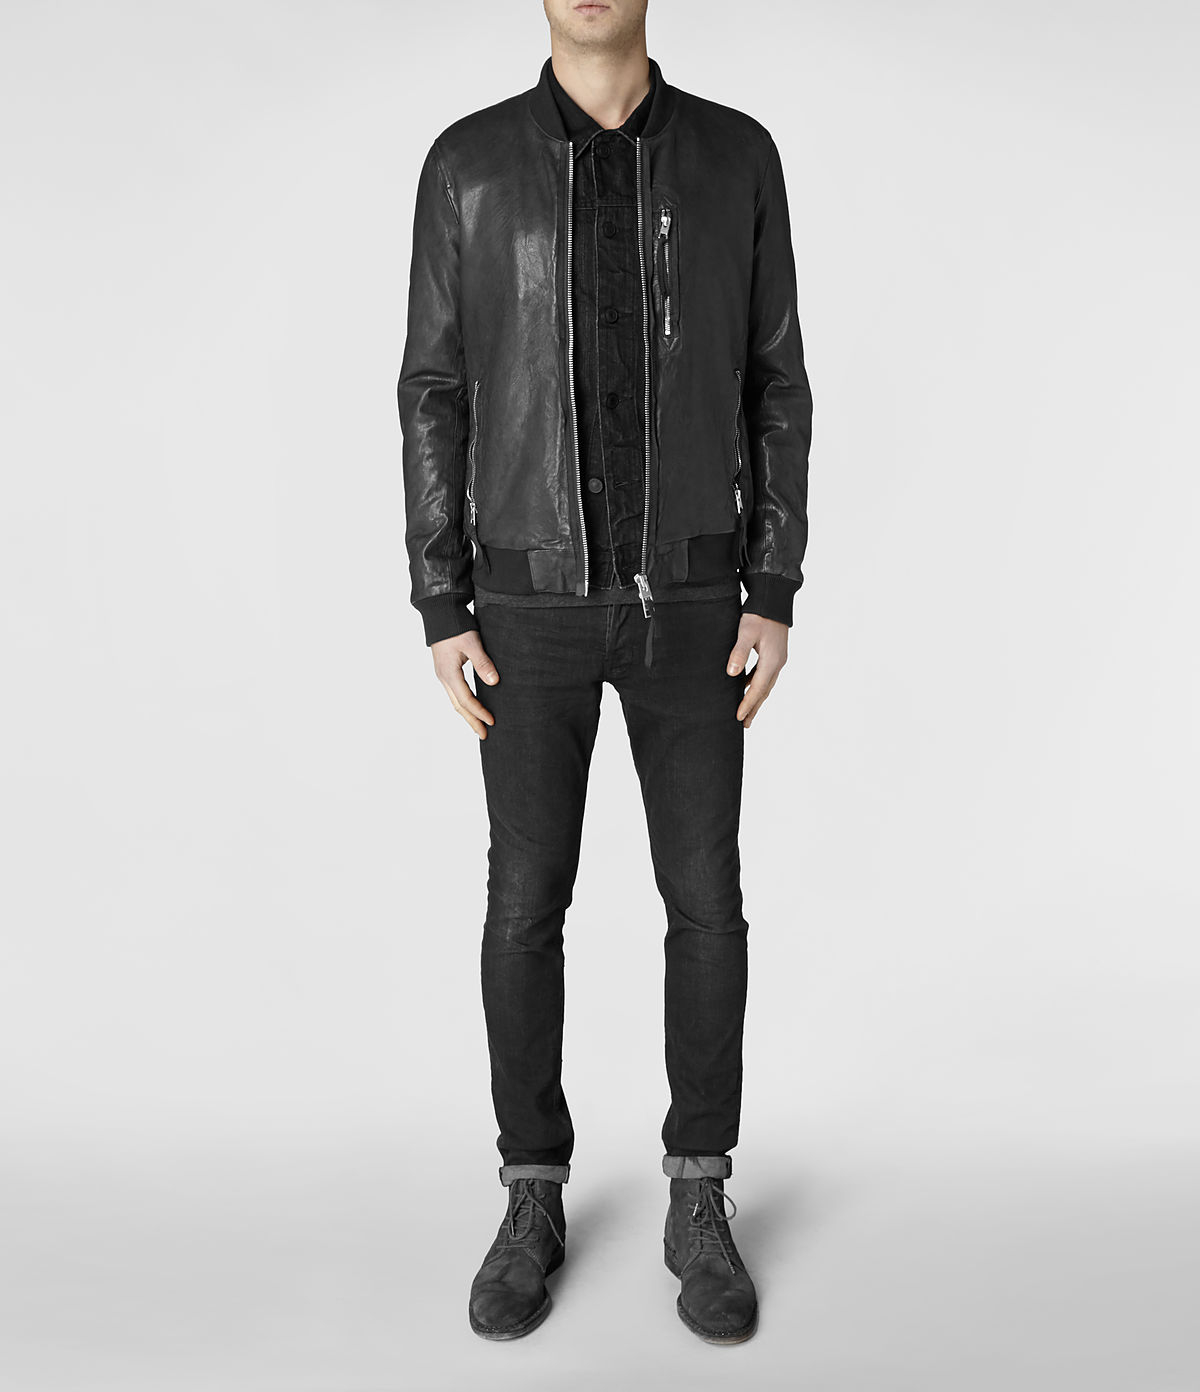 Lyst Allsaints Momoto Leather Bomber Jacket In Gray For Men